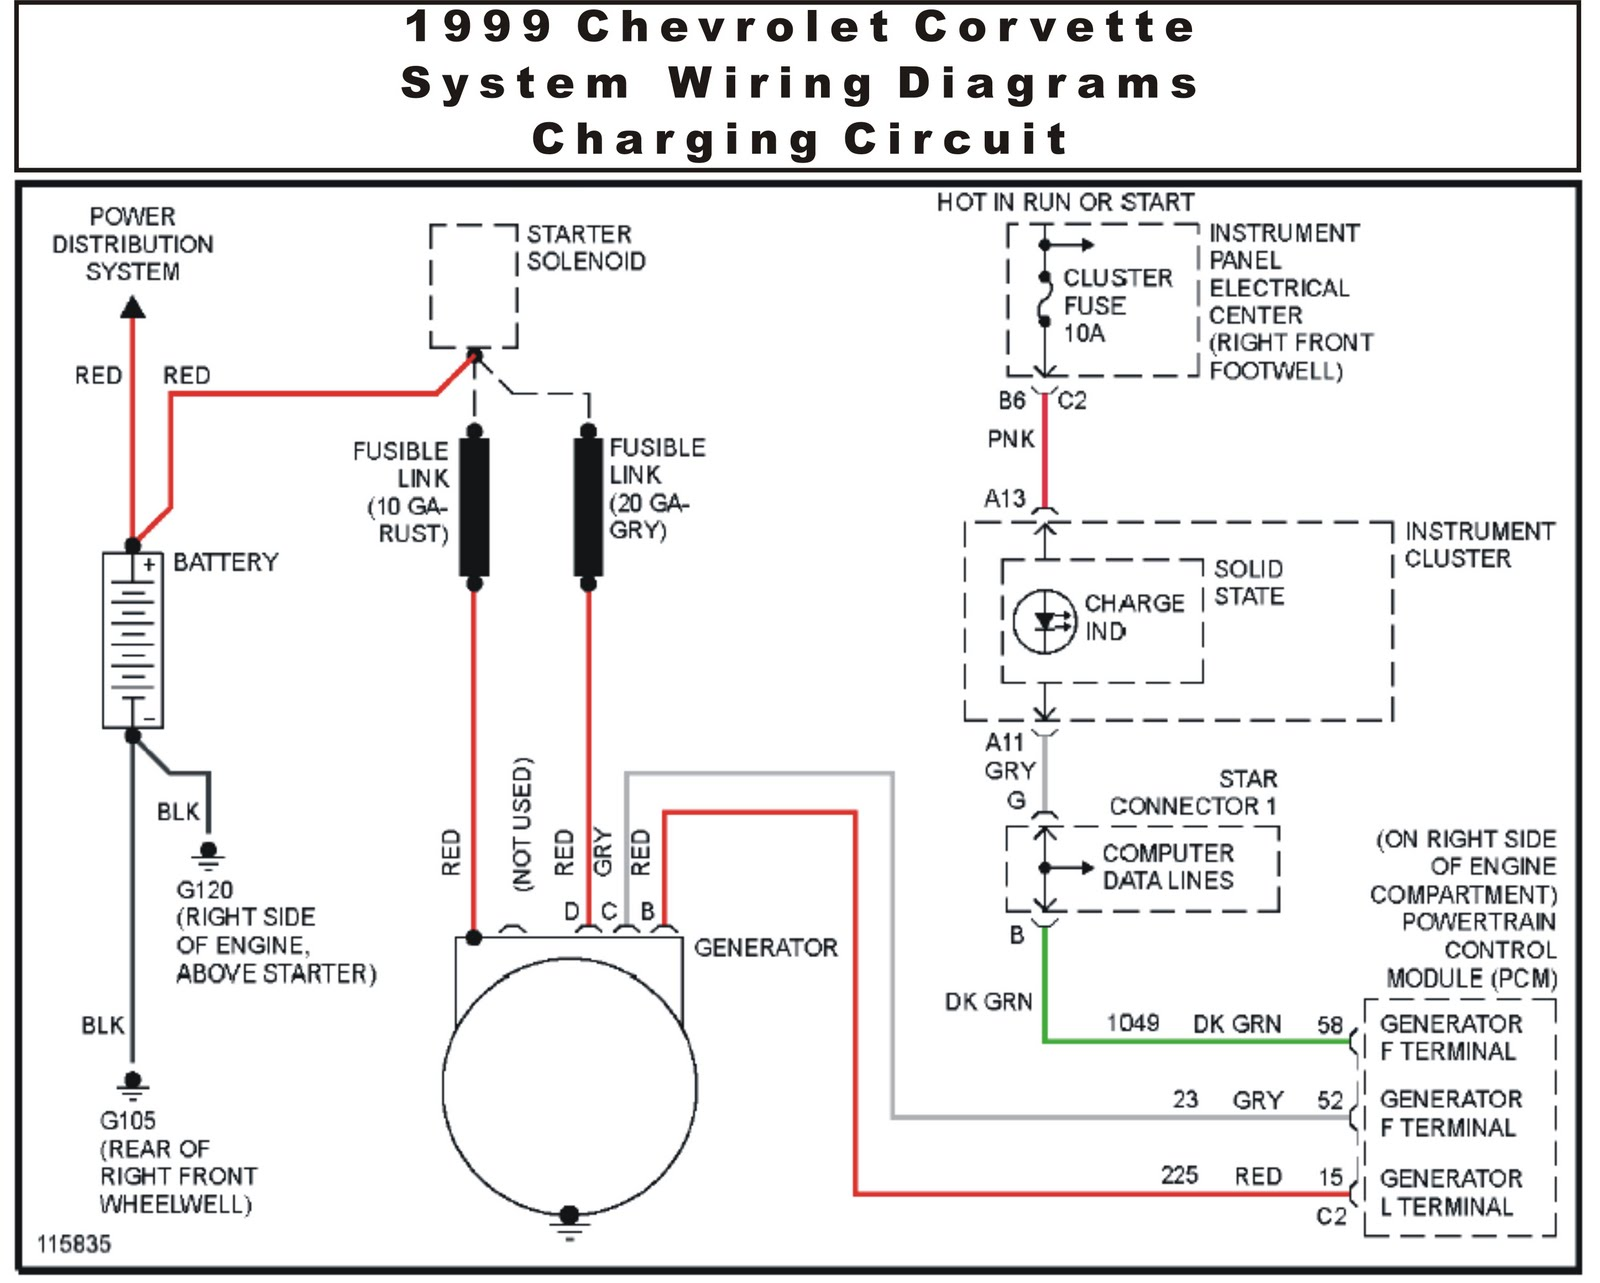 1999 Chevrolet Corvette System Wiring Diagrams Charging